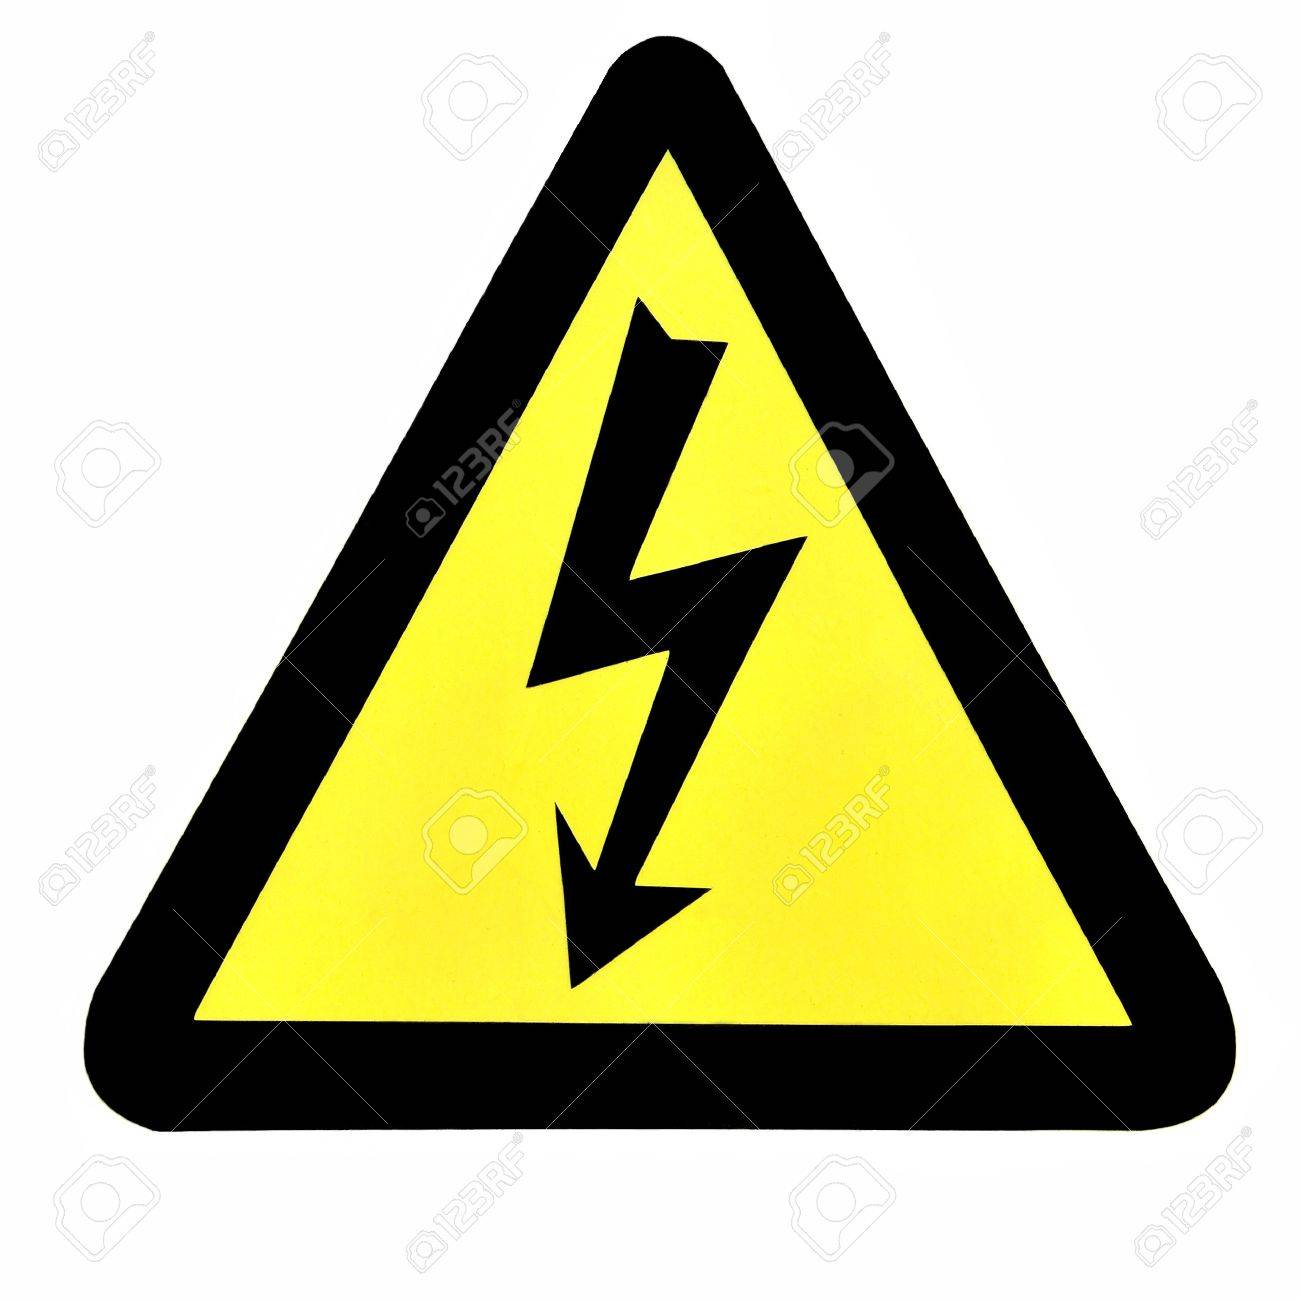 High Voltage Sign Stock Photo - 14102822